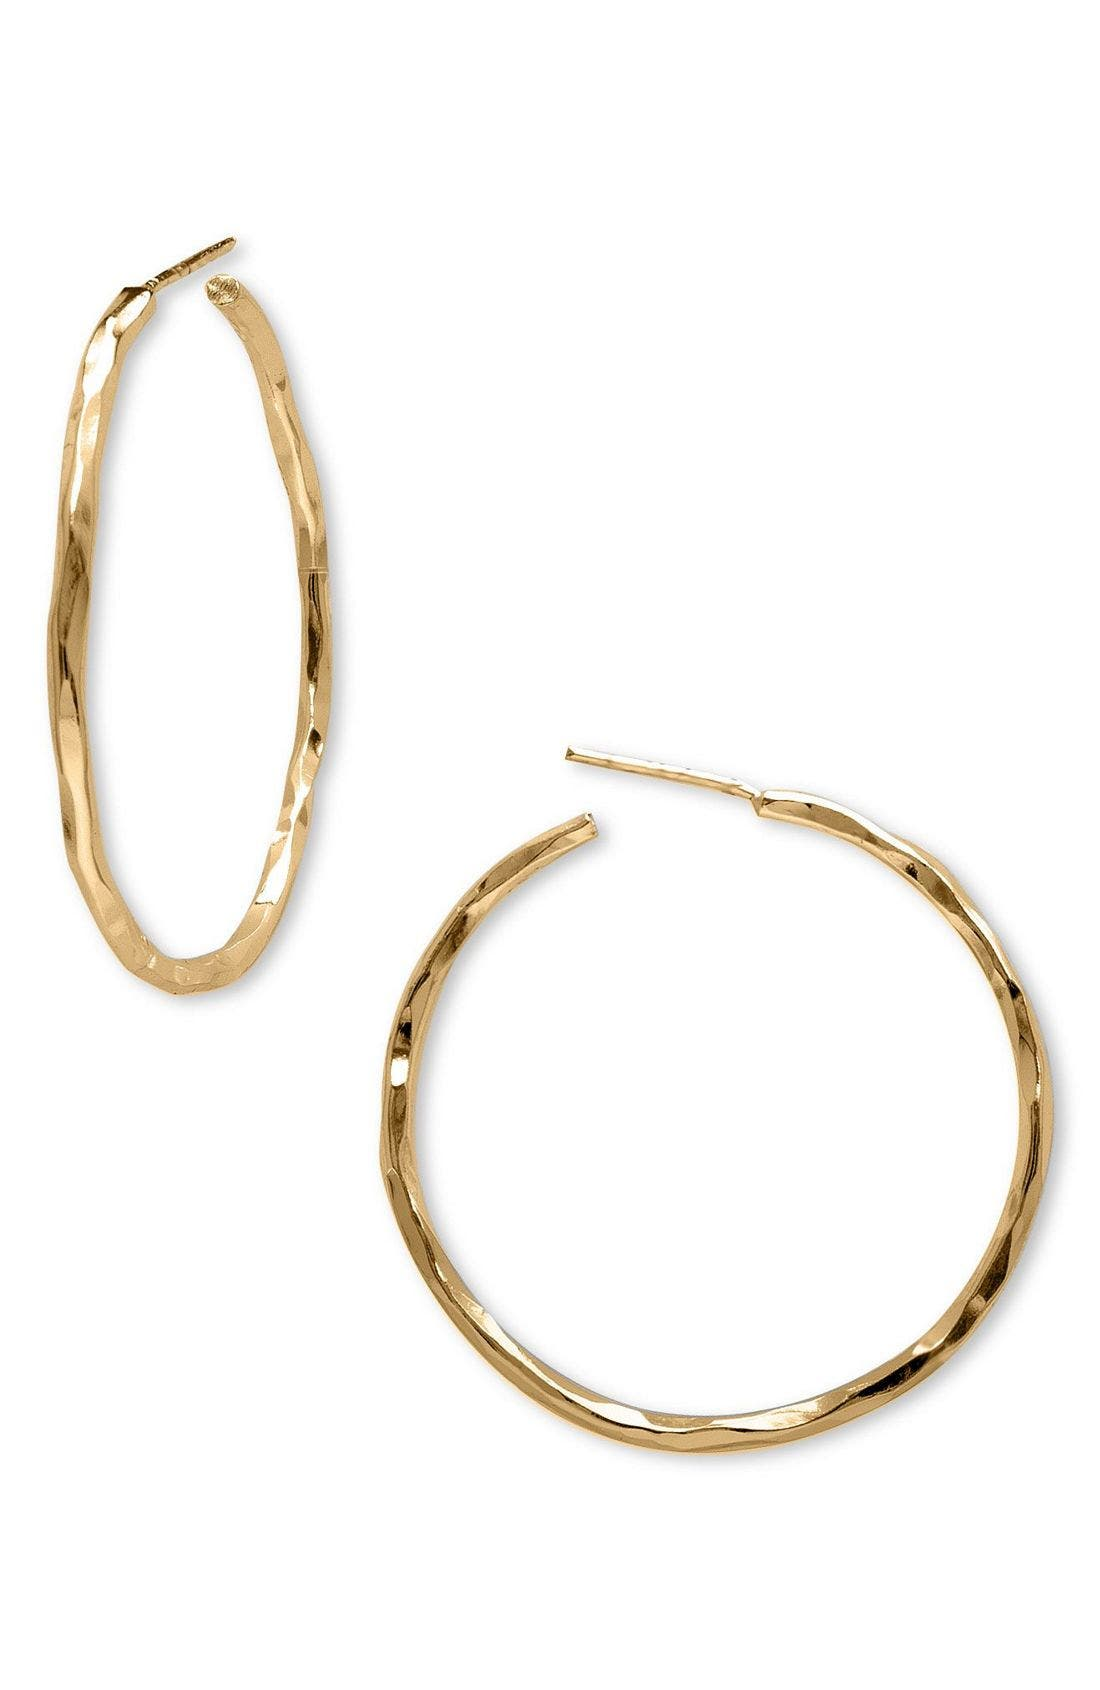 Medium Hammered Hoop Earrings,                             Main thumbnail 1, color,                             GOLD